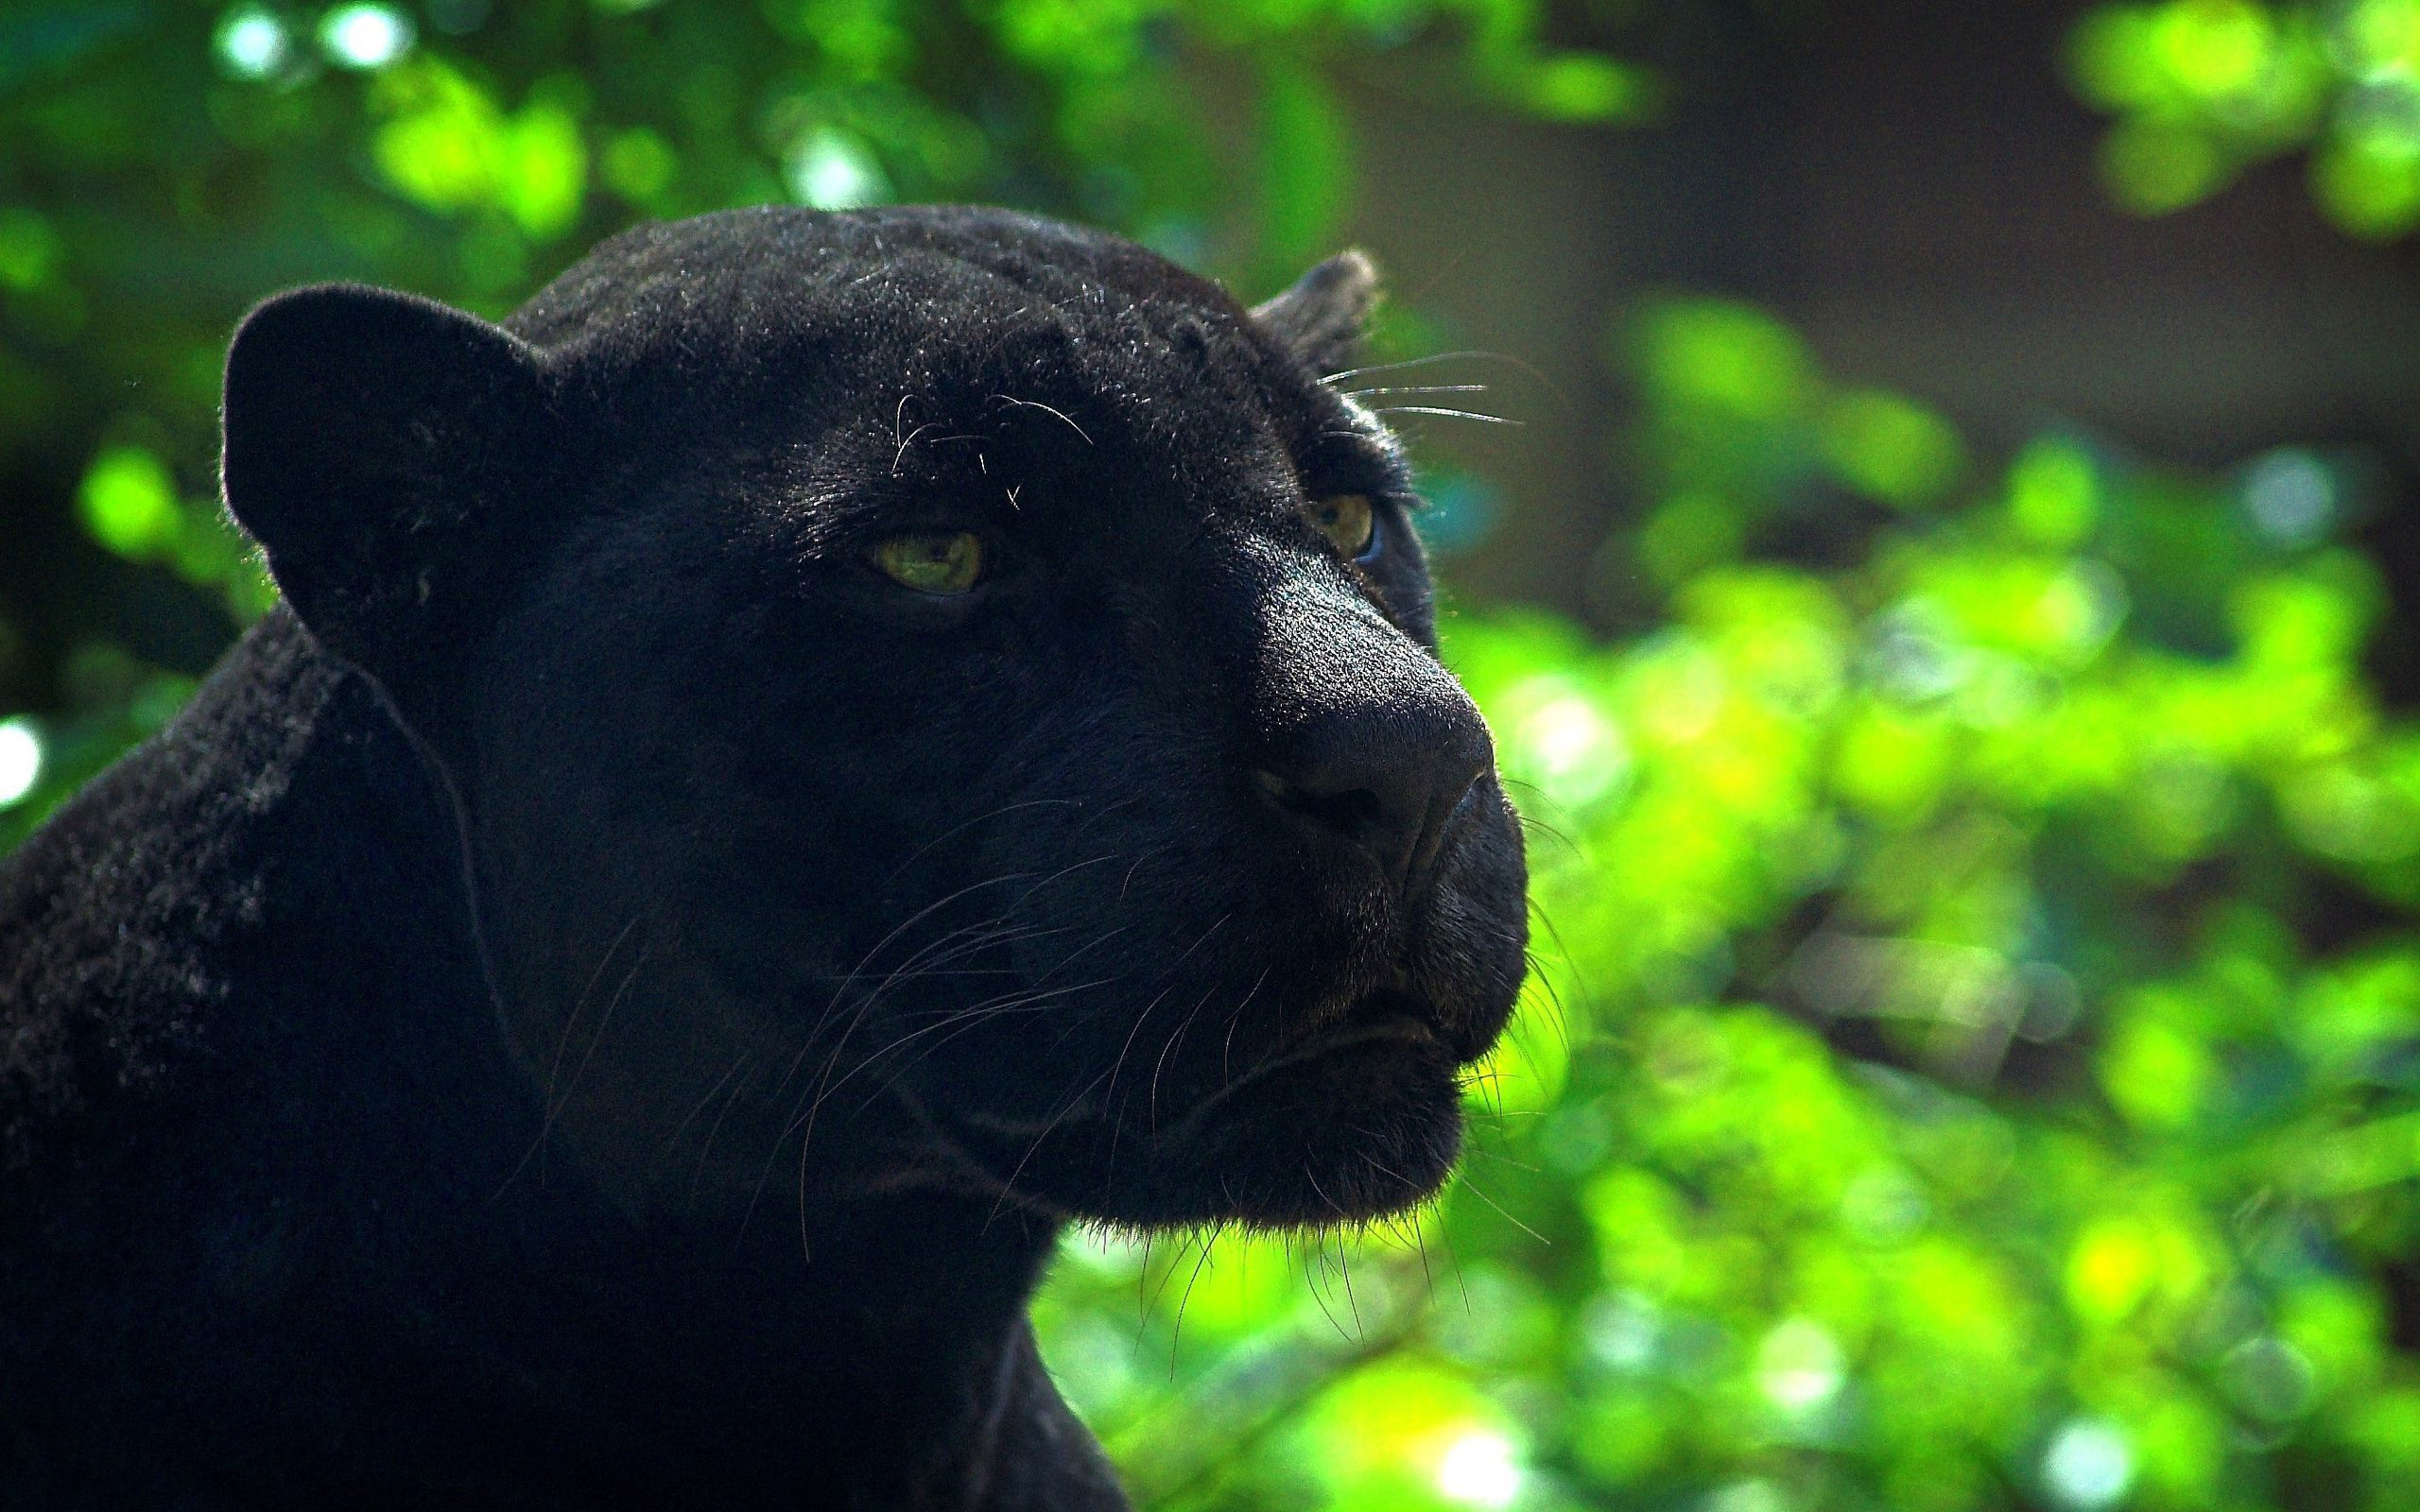 Black Panther Animal Wallpapers: Black Panther Wallpapers Backgrounds